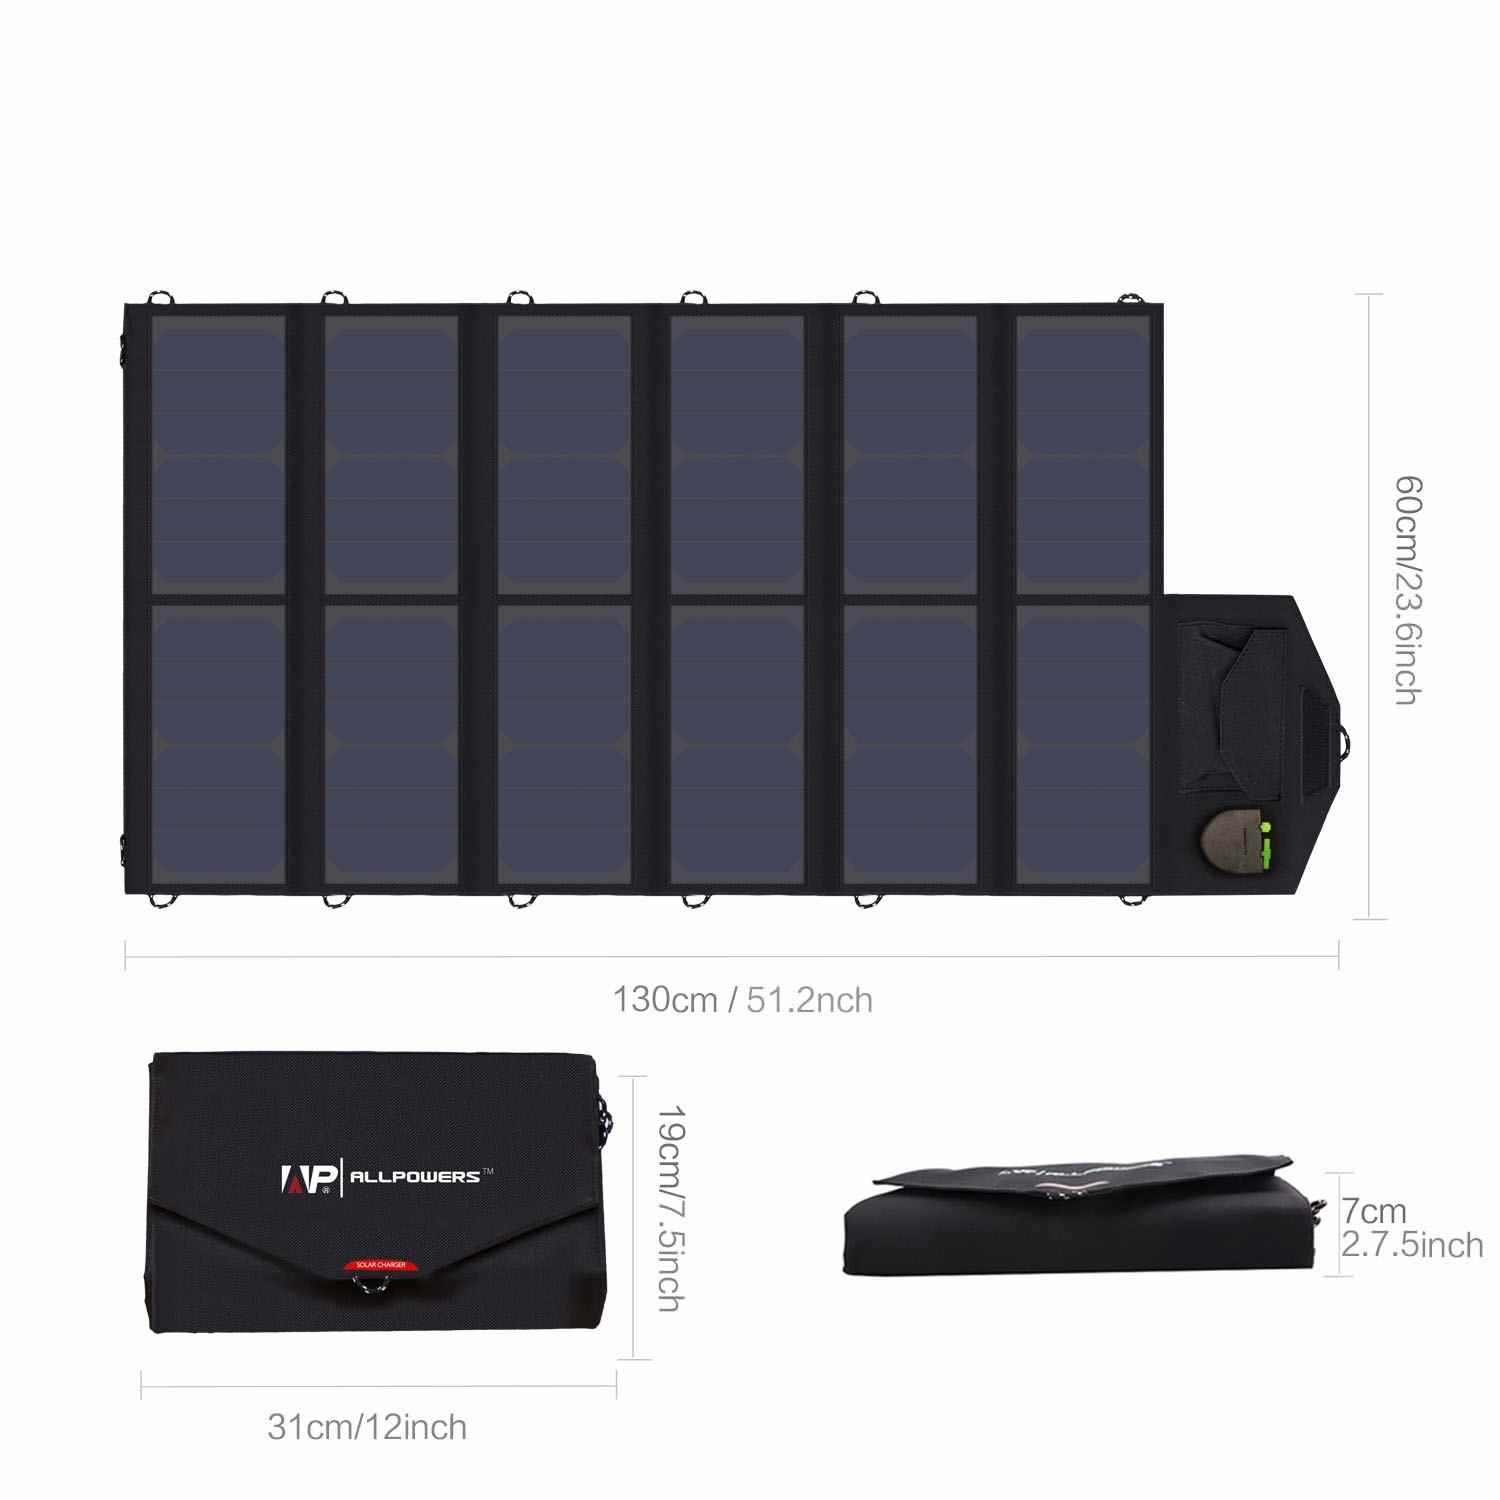 solar panel charger 80W sunpower solar panel with dual output ports 5V2.5A*2PCS & 18V3.5A*1PC for charging smartphones, tablets, car battery,laptops made in China. Thumb 2